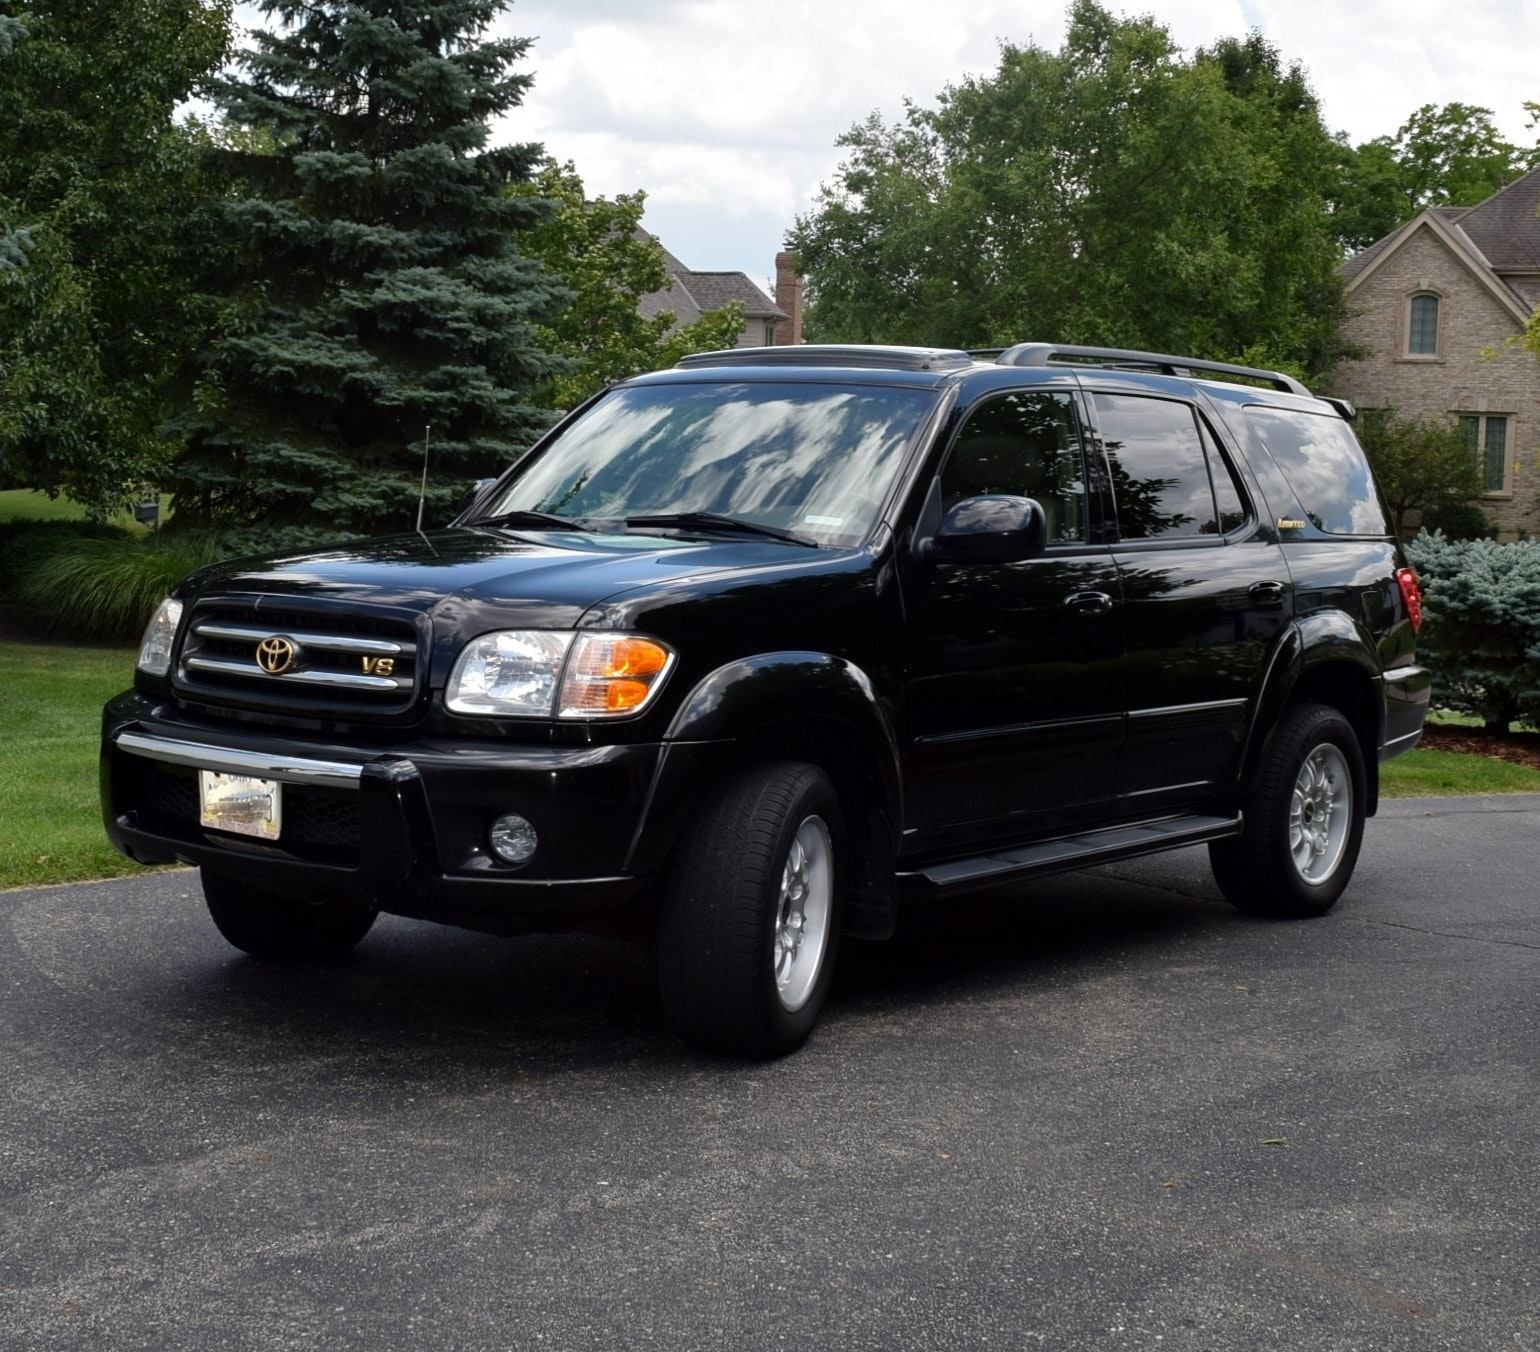 2004 Toyota Sequoia Limited 4x4 SUV